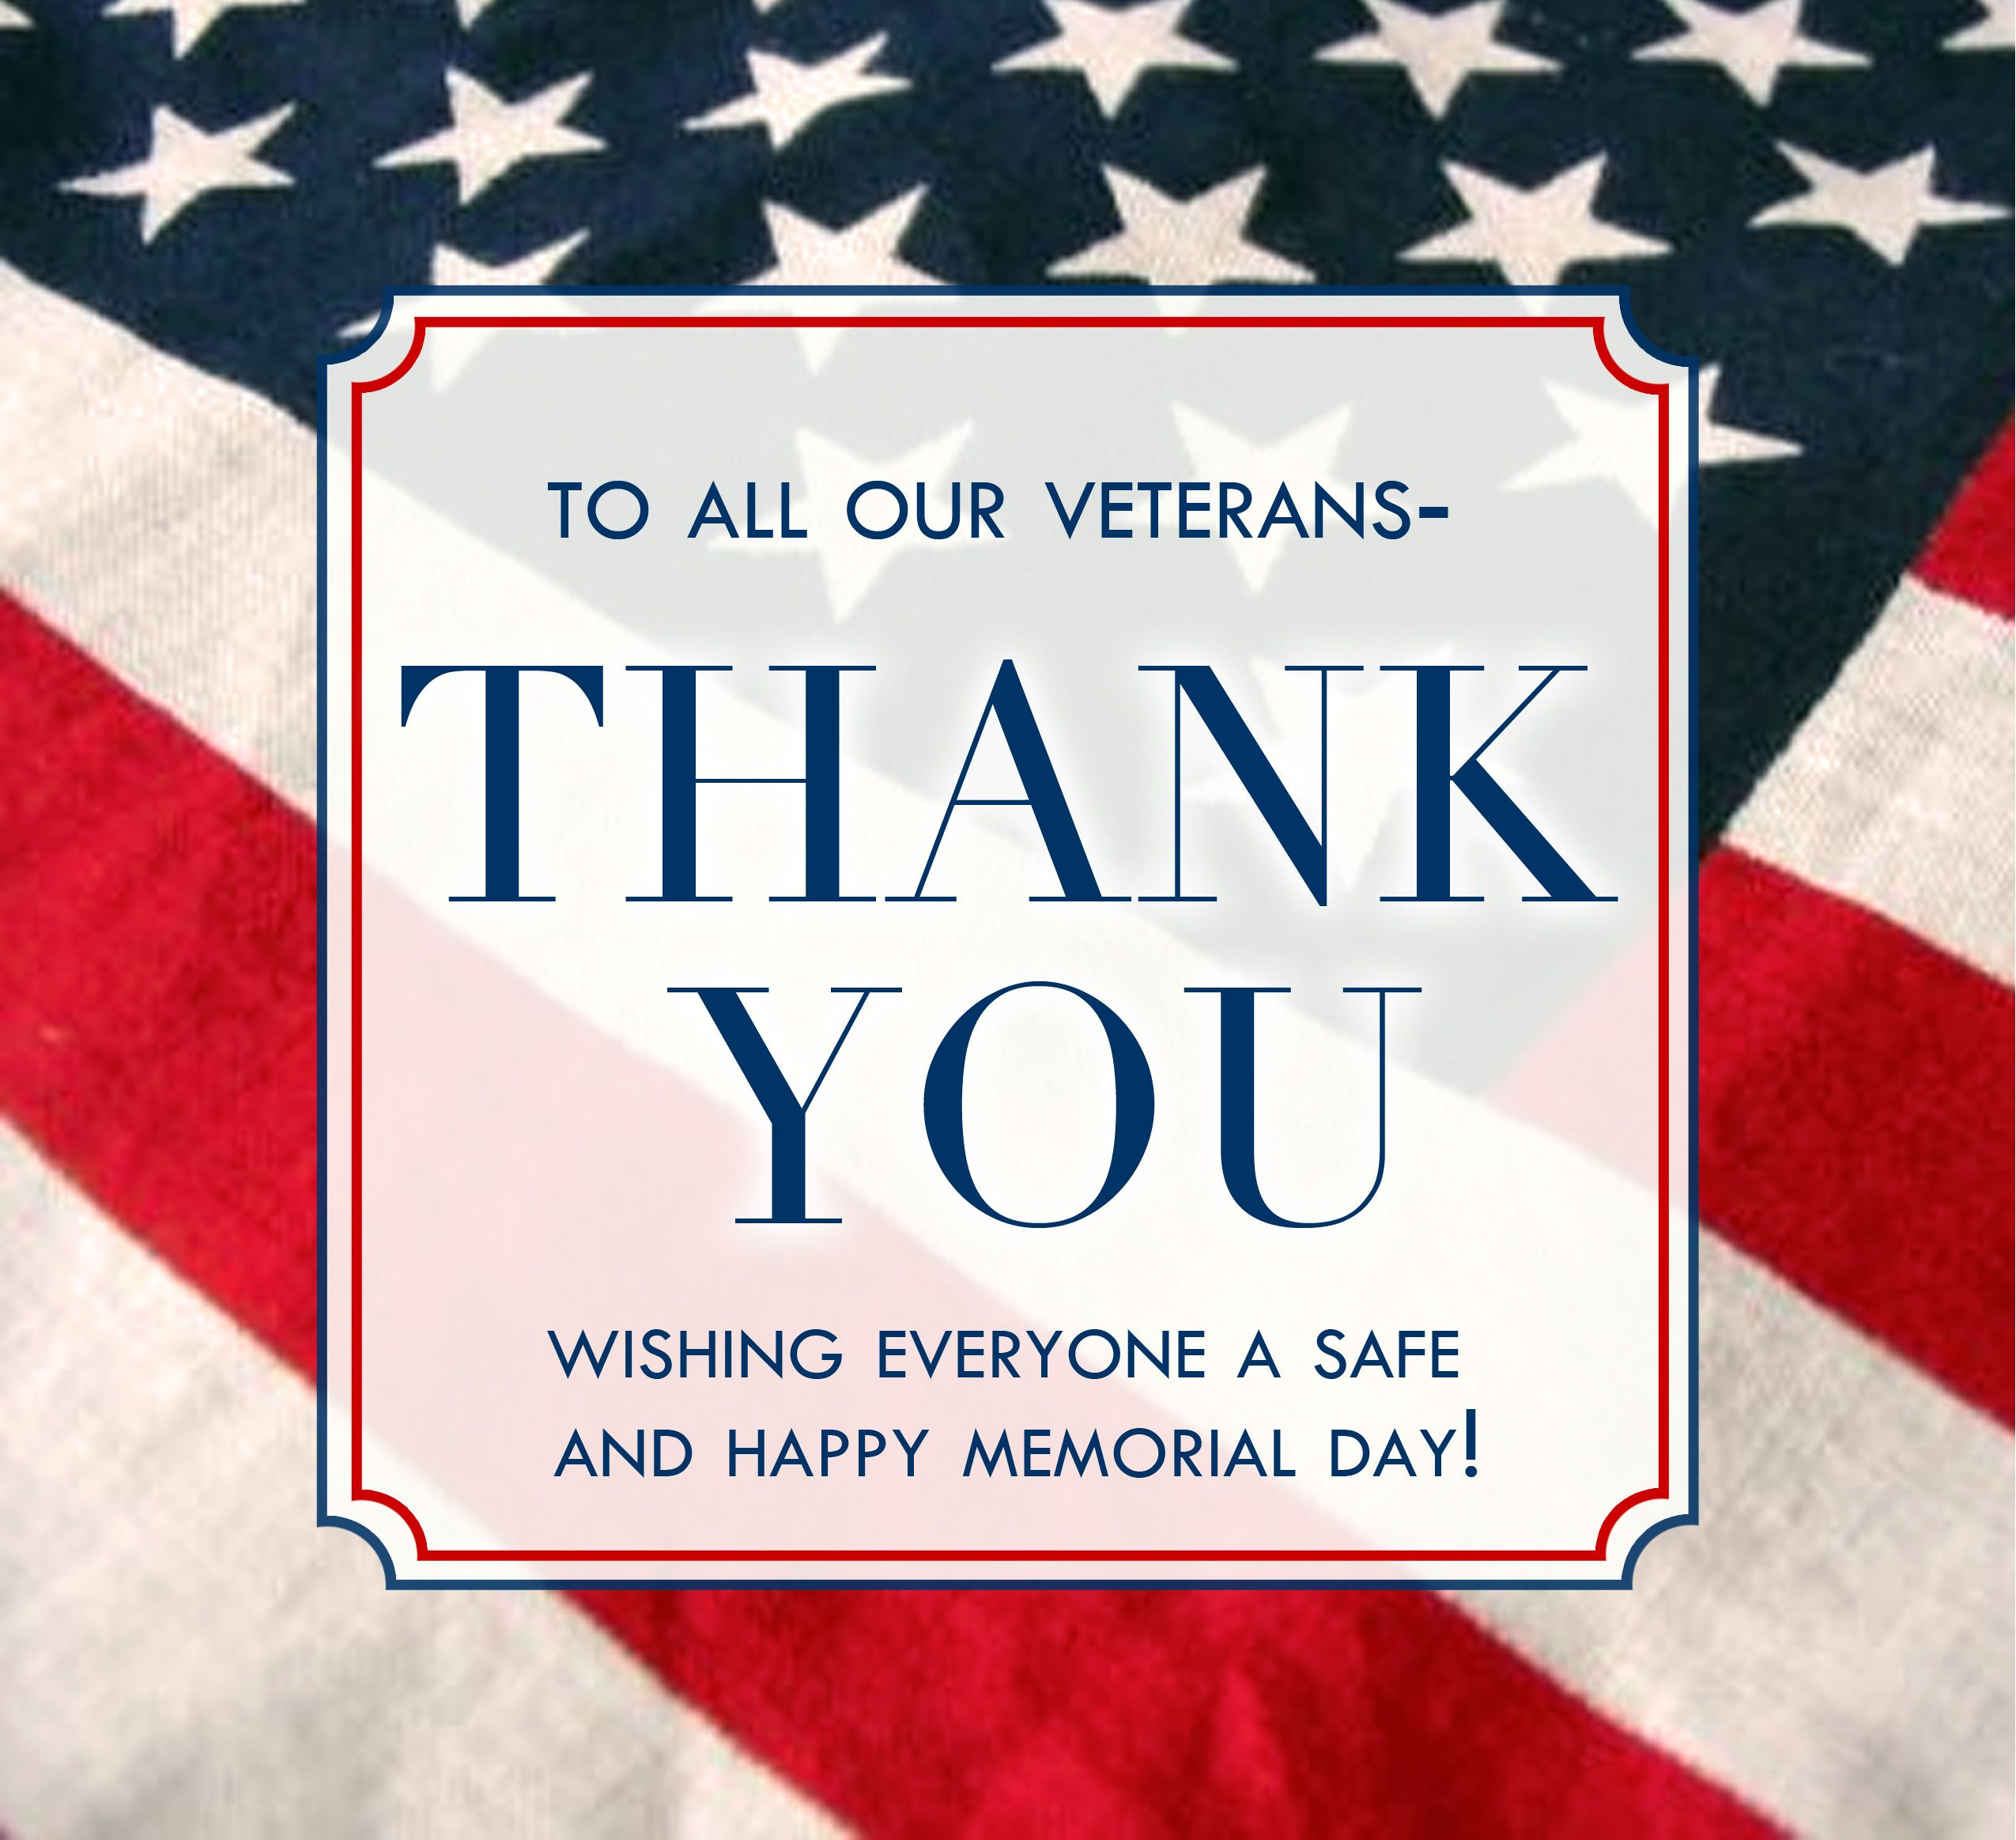 thank all of our veterans for their service, and to